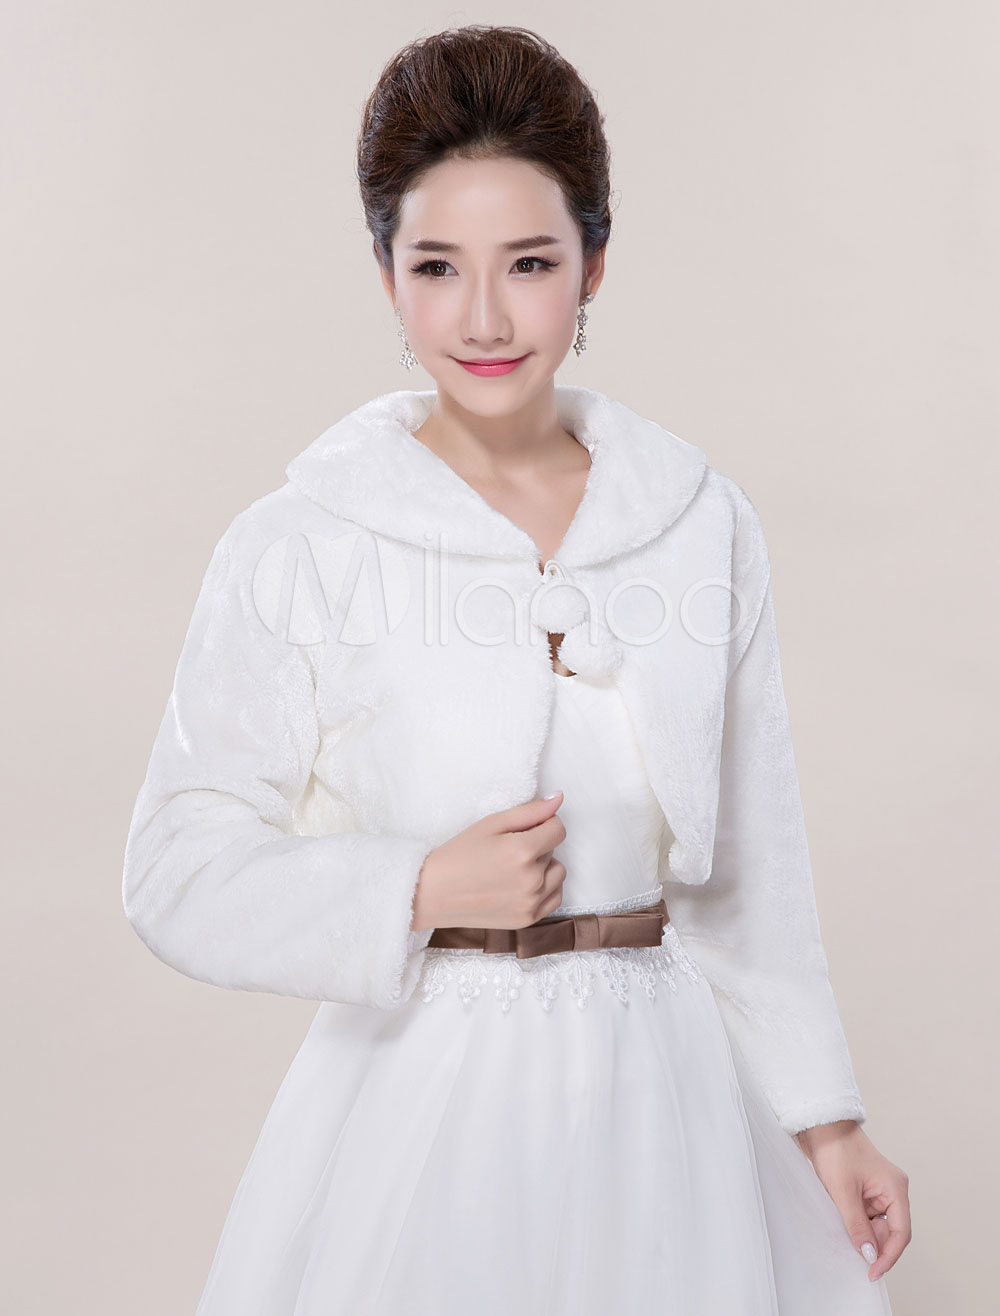 Faux Fur Wedding Jacket Shawls Long Sleeve Wedding Shrug Bolero Coat